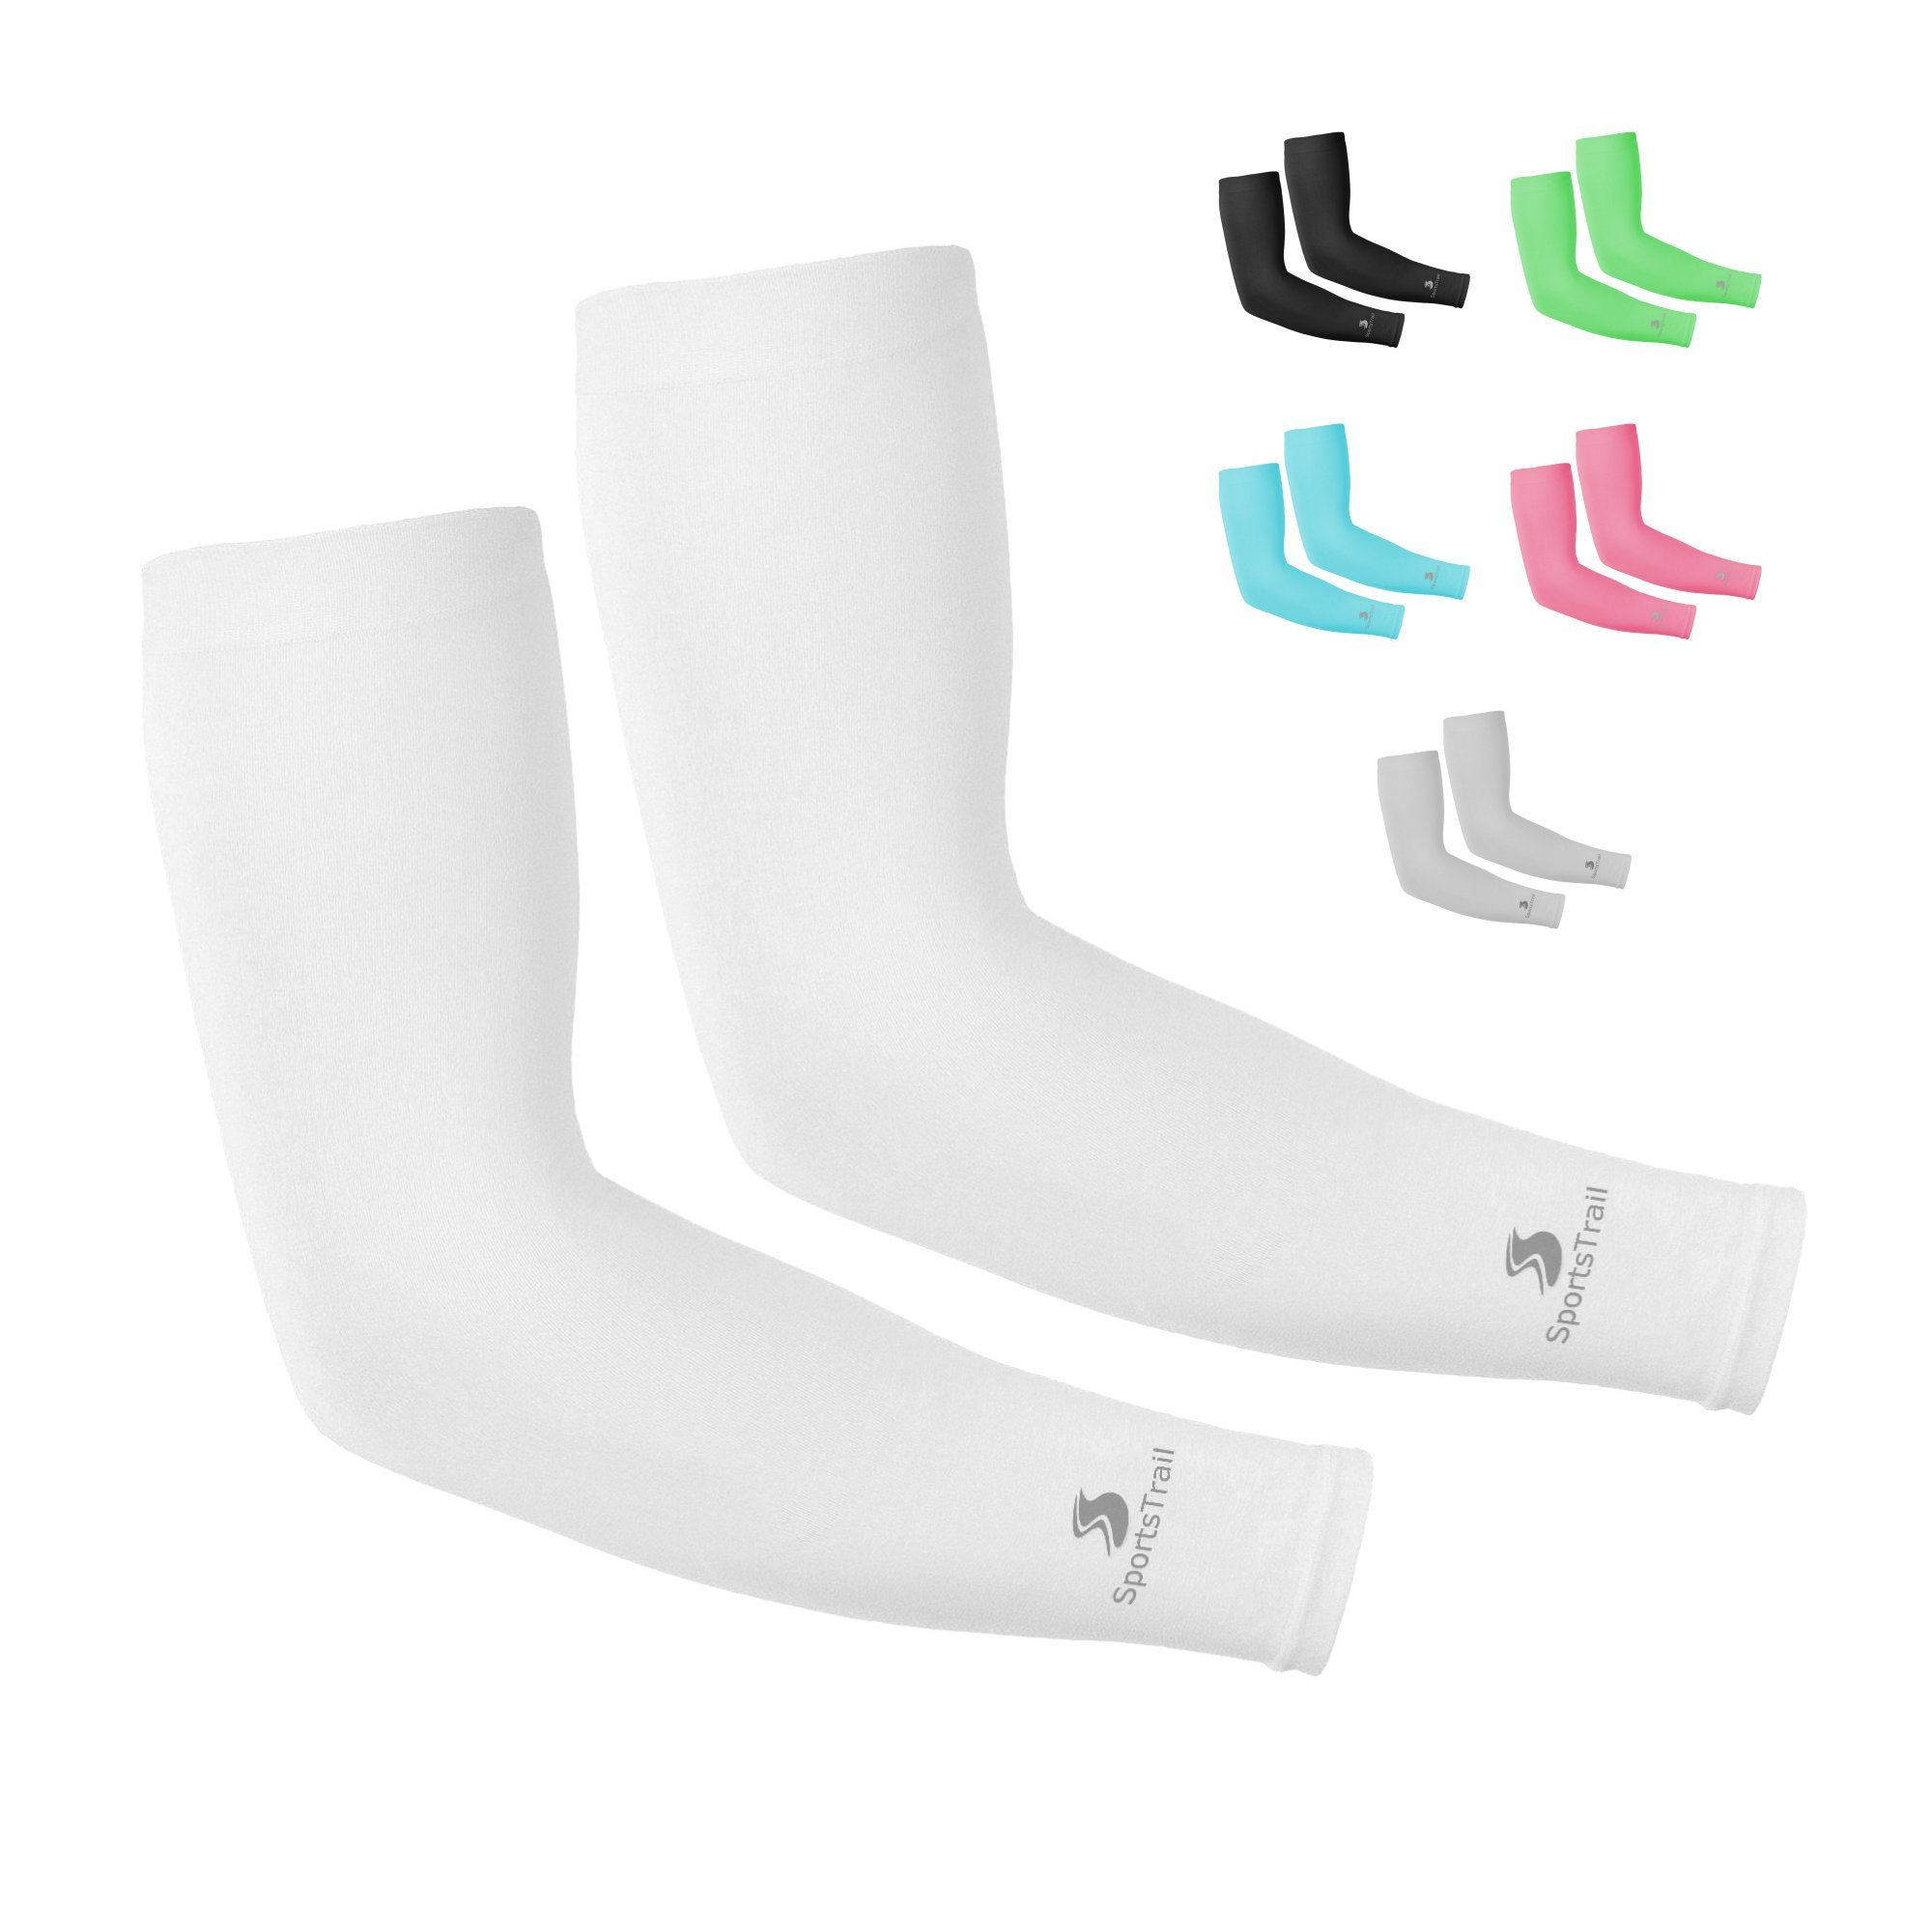 SportsTrail Arm Sleeves for Men & Women, Tatoo Cover up Sleeves to Cover Arms, 1 Pair (White)